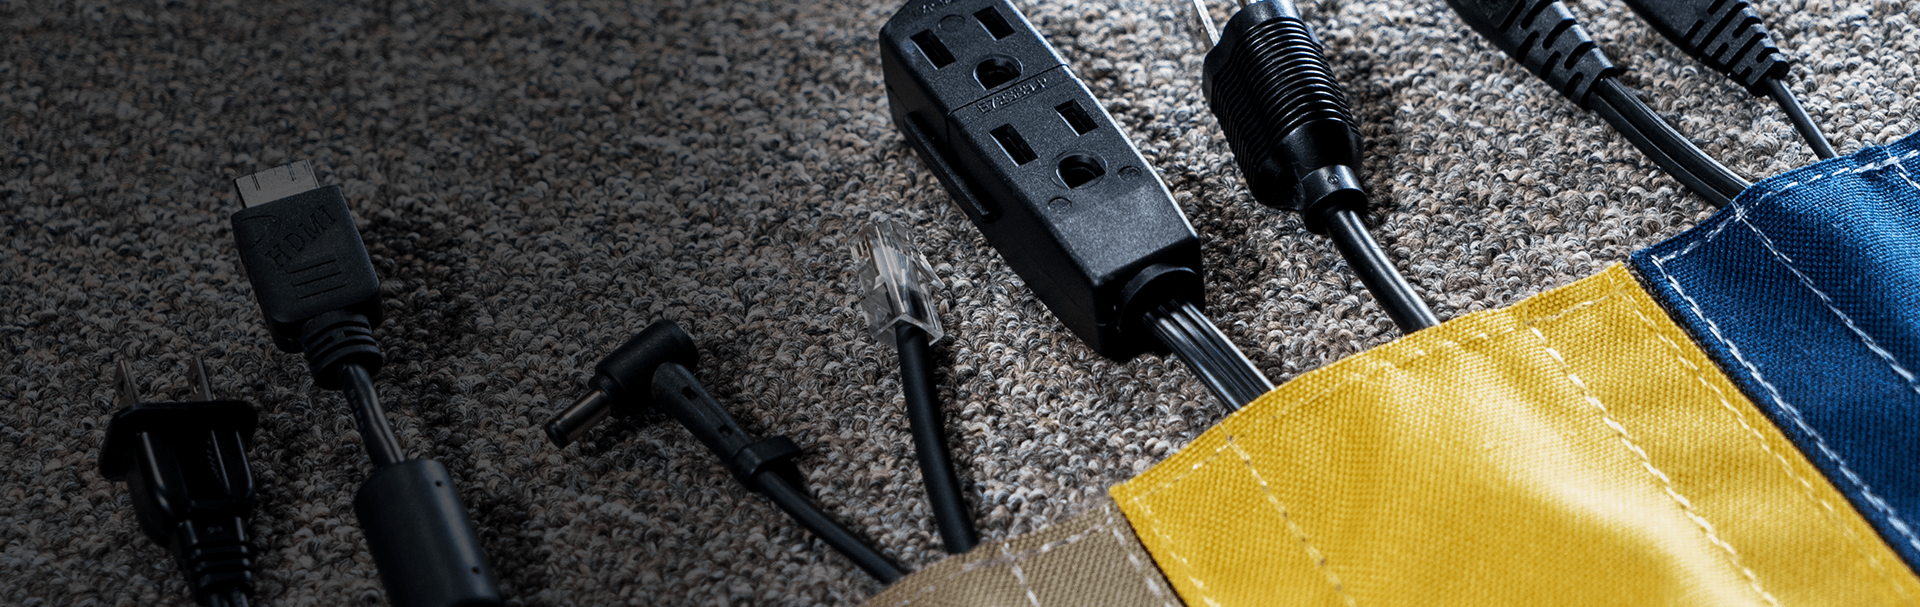 Cover cables on carpet and prevent trips and falls with SAFCORD®.